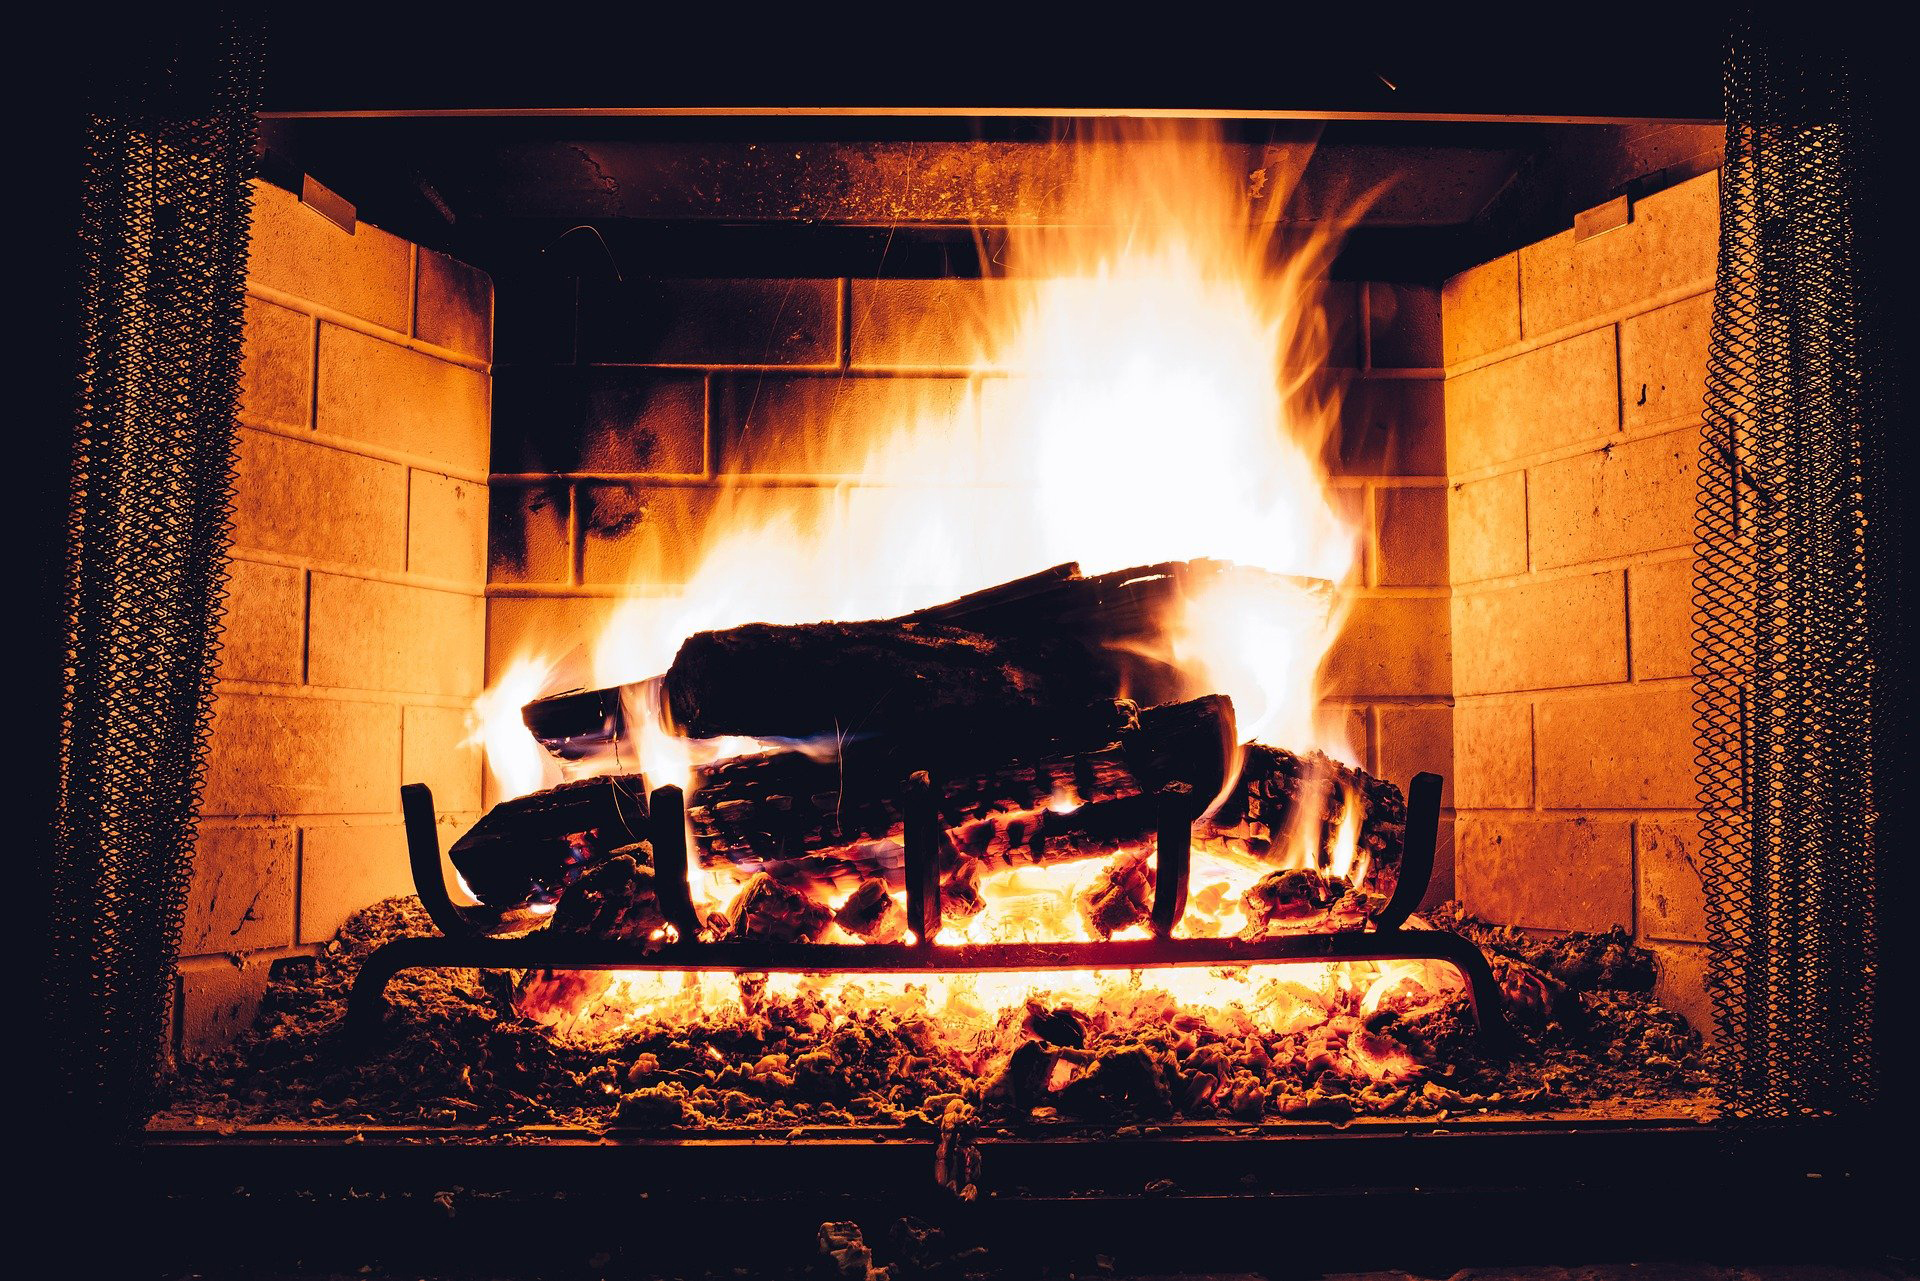 holiday fireplace safety, holiday season fireplace security, fireplace and candle safetyk, fireplace and candle security, security specialists fireplace safety, security specialists fireplace security